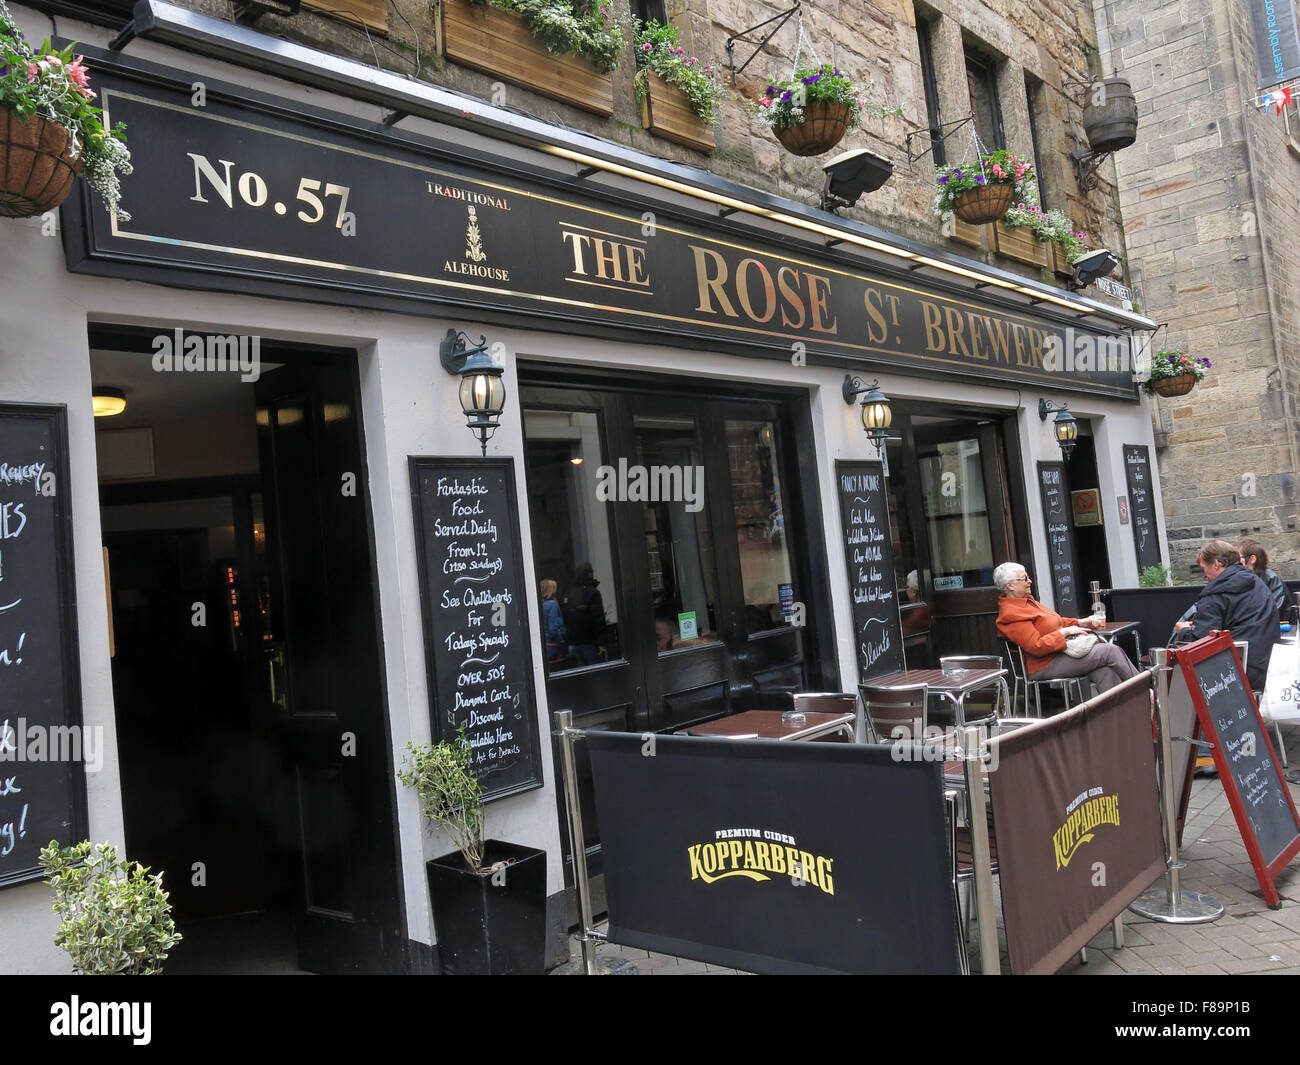 Rose St Brewery No 57,Pub Rose St,Edinburgh City Centre,Scotland,UK - Stock Image